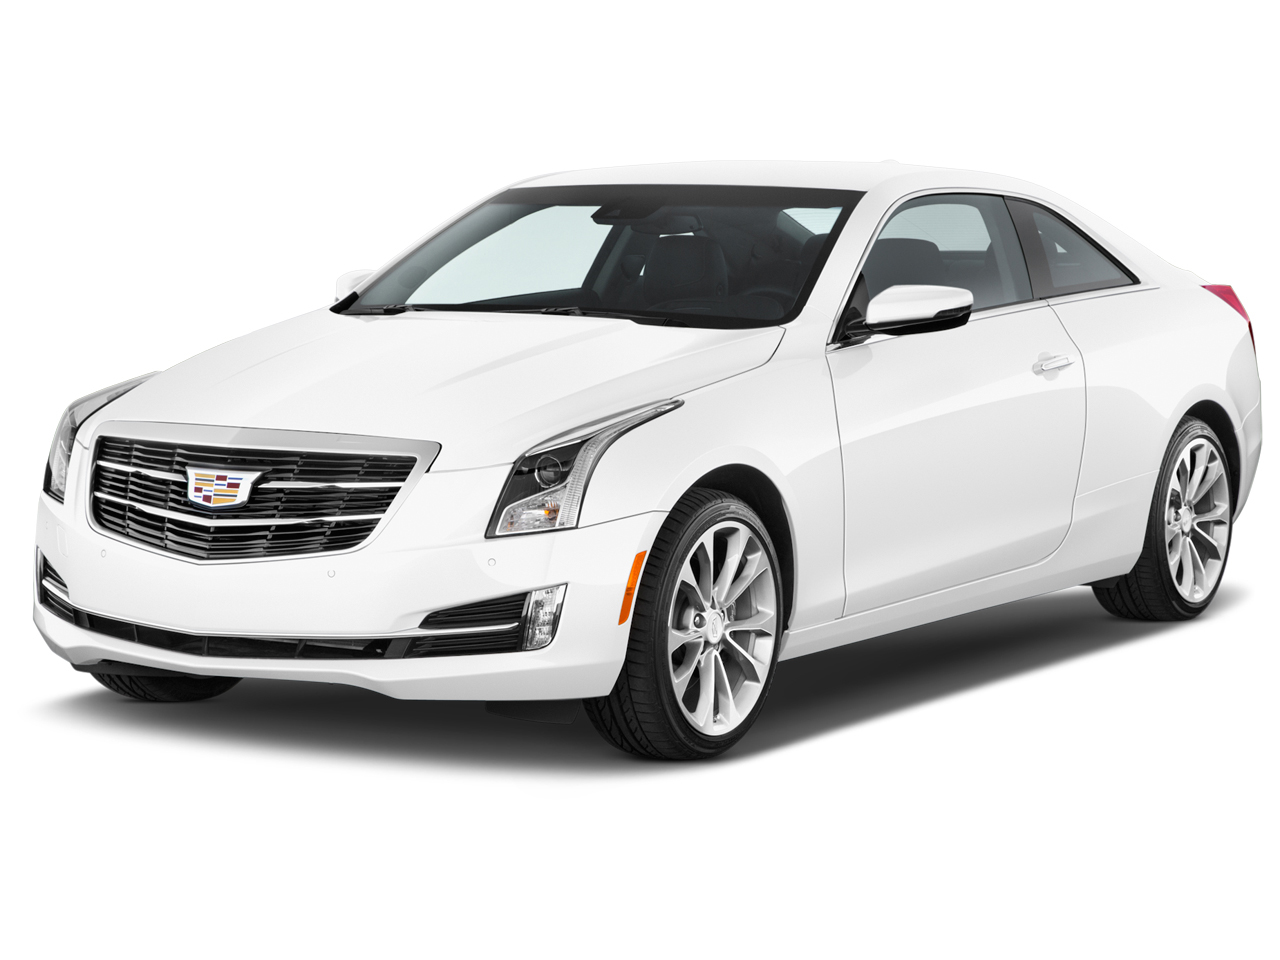 image coupe and download share gallery best cts cadillac